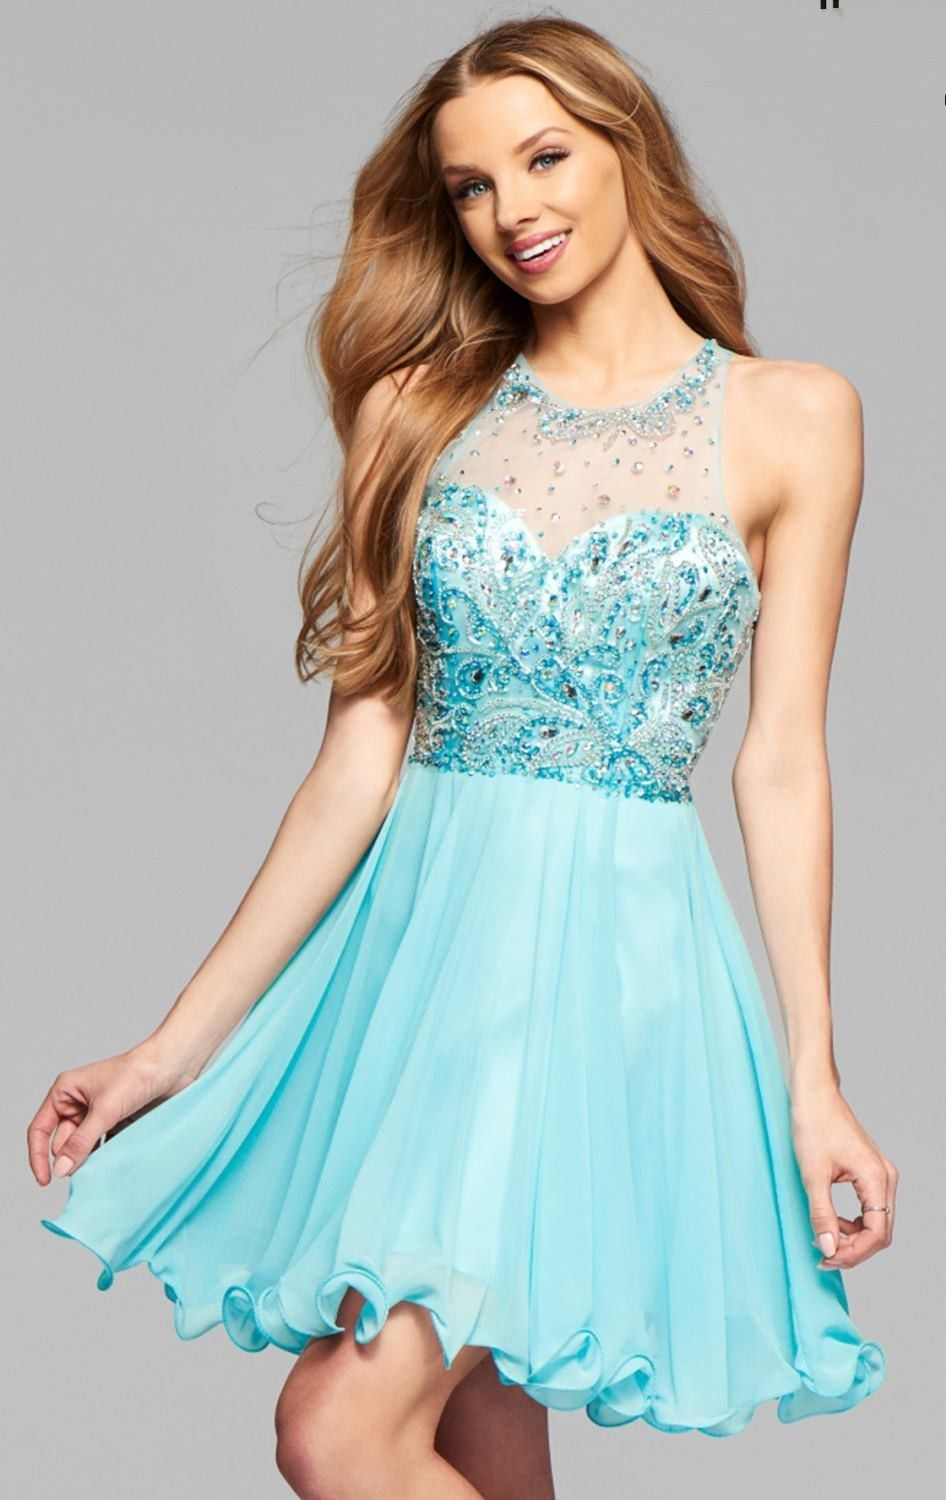 New Sky Blue Homecoming Dresses Short Prom Dresses Beaded High ...